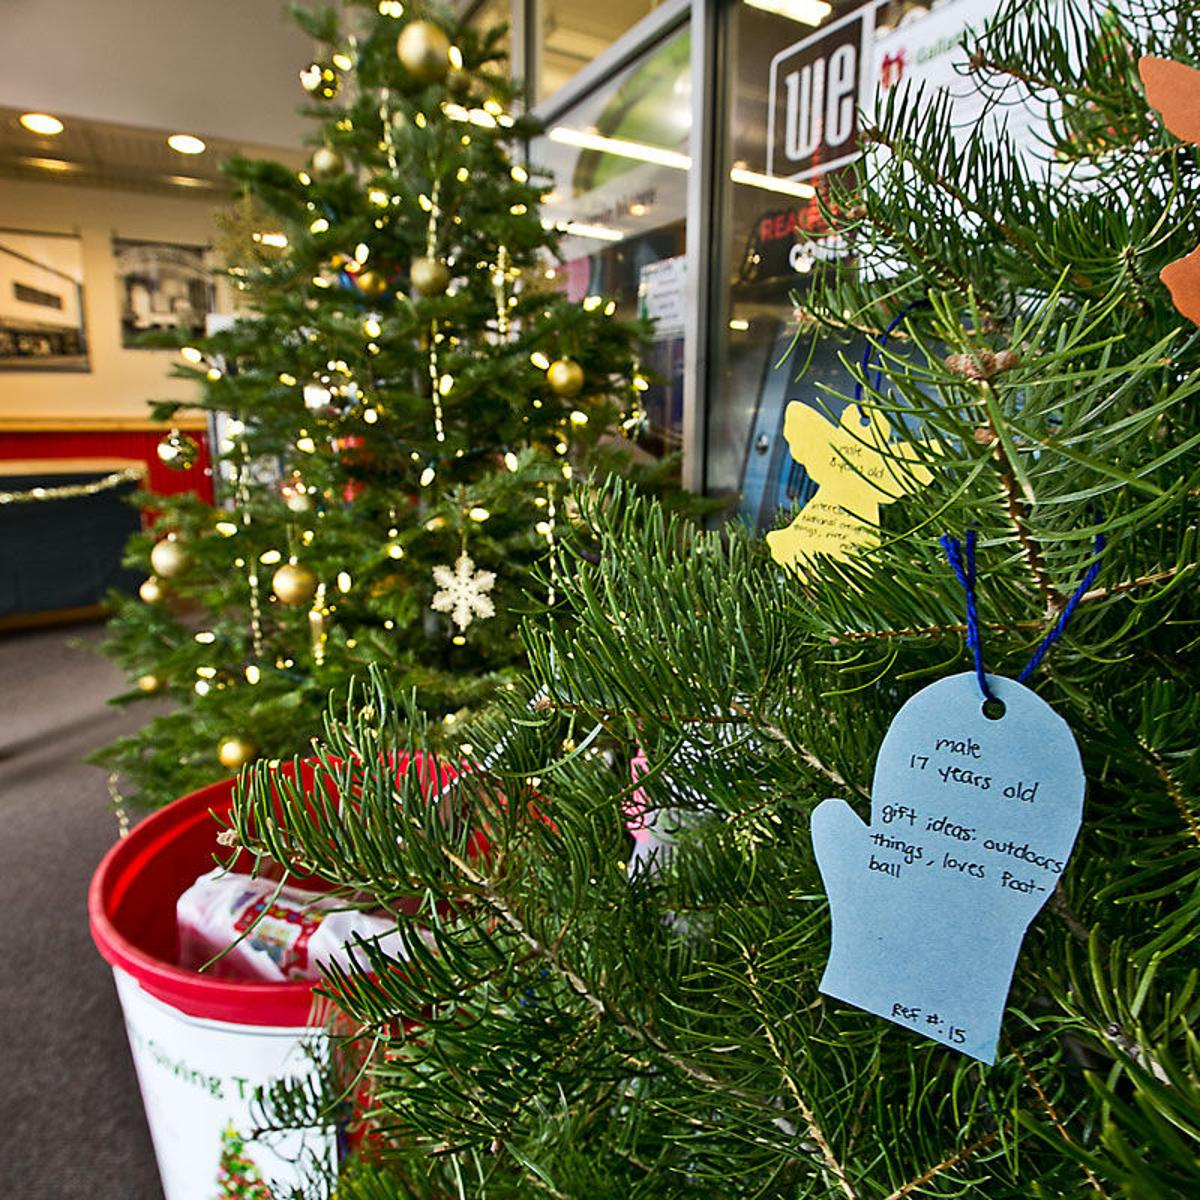 Christmas Giving Tree Ideas.Giving Tree Collecting Gifts For Troubled Youth News